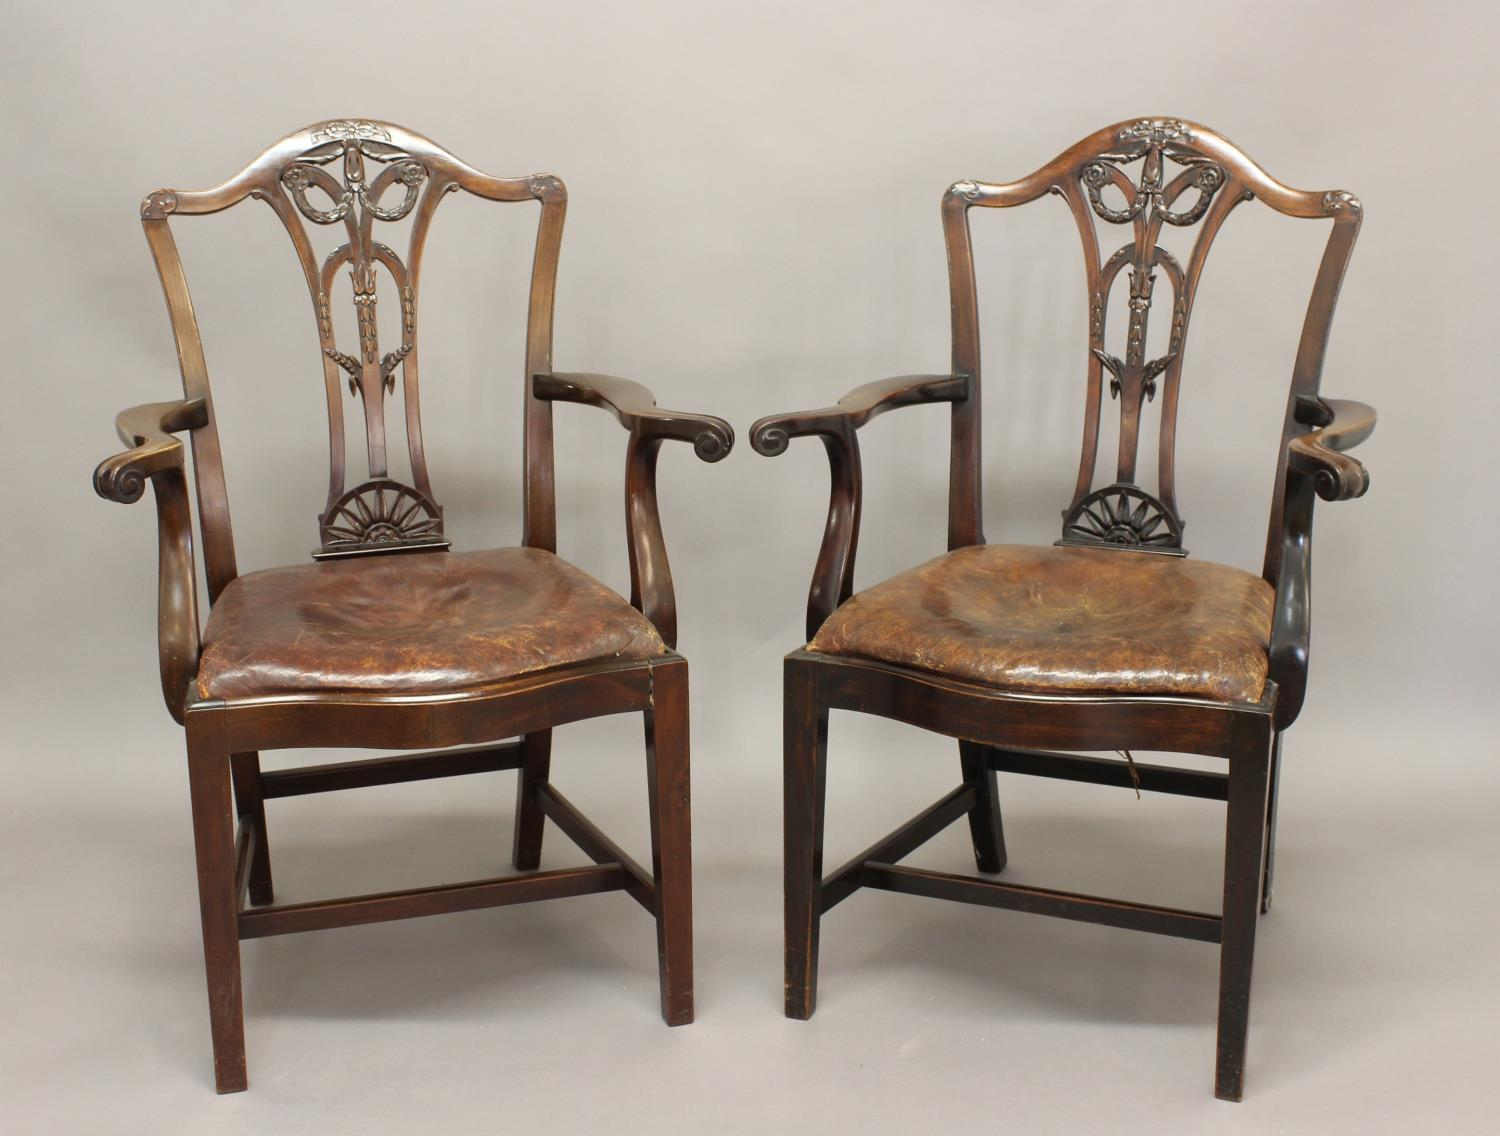 PAIR OF CHIPPENDALE STYLE MAHOGANY ARMCHAIRS, the pierced splats with moulded swag and ribbon